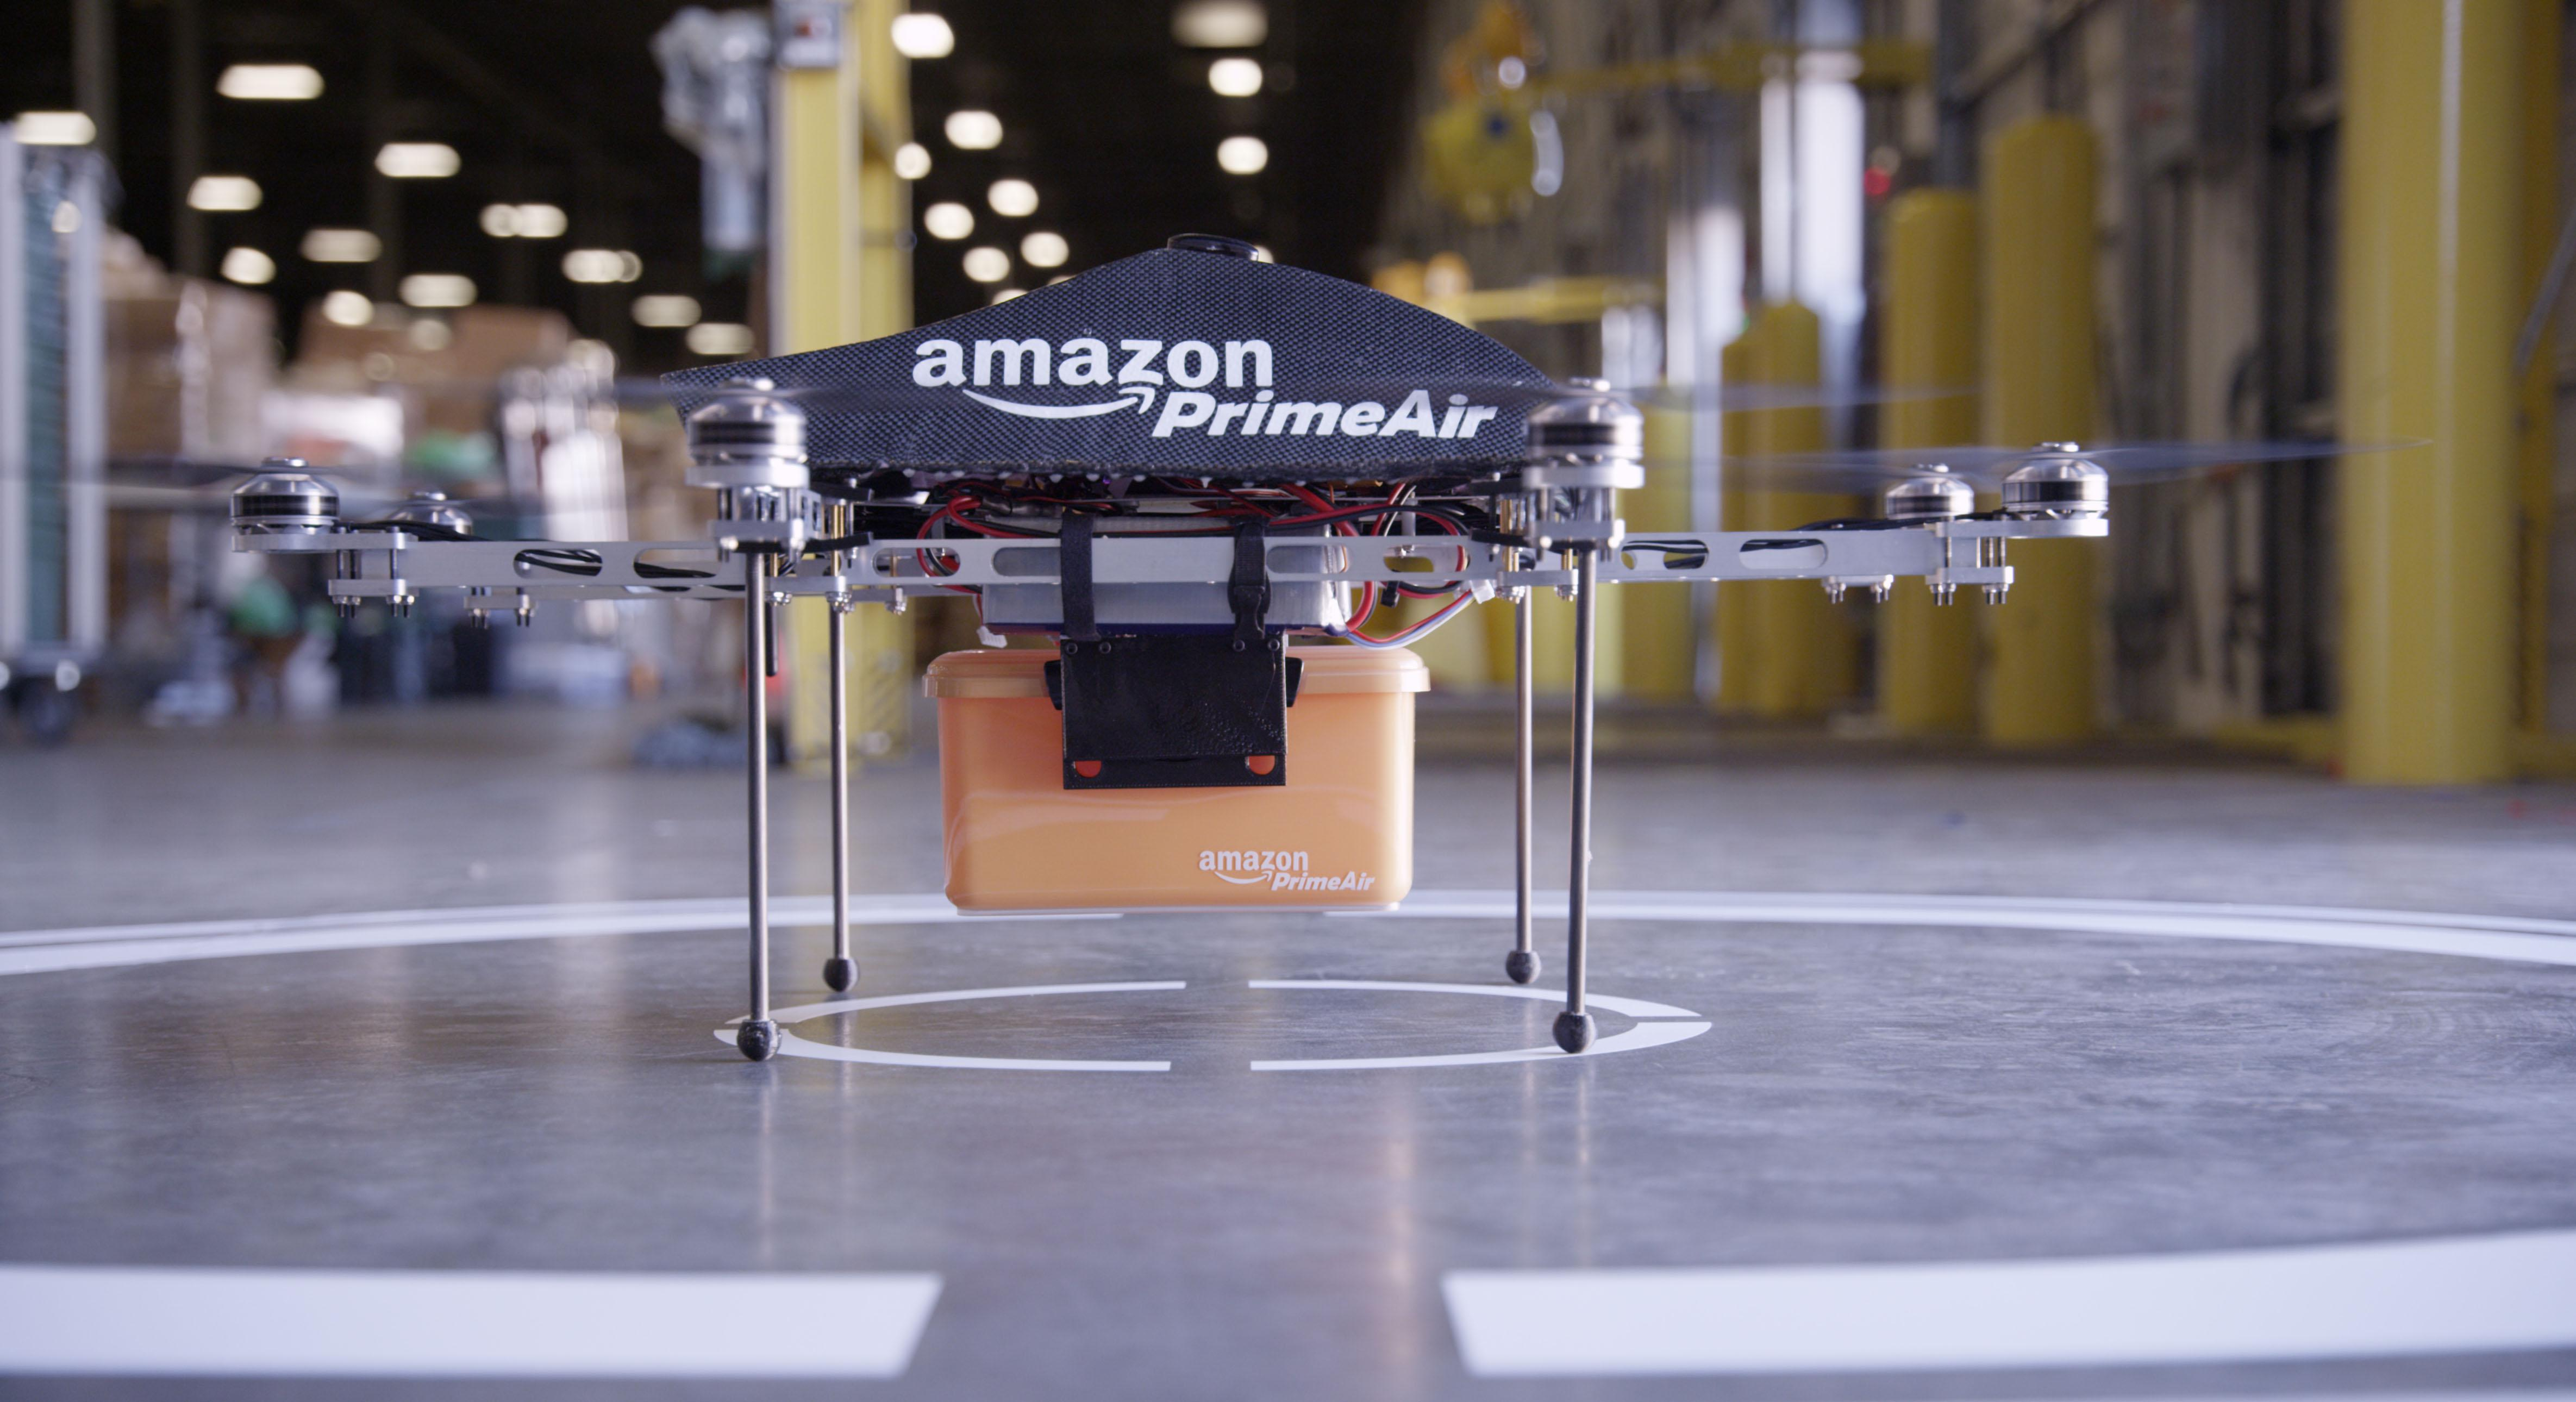 By 2015, Amazon cliams that their Prime Air drones will be ready to deliver products within 30 minutes so long as the FAA allows it.